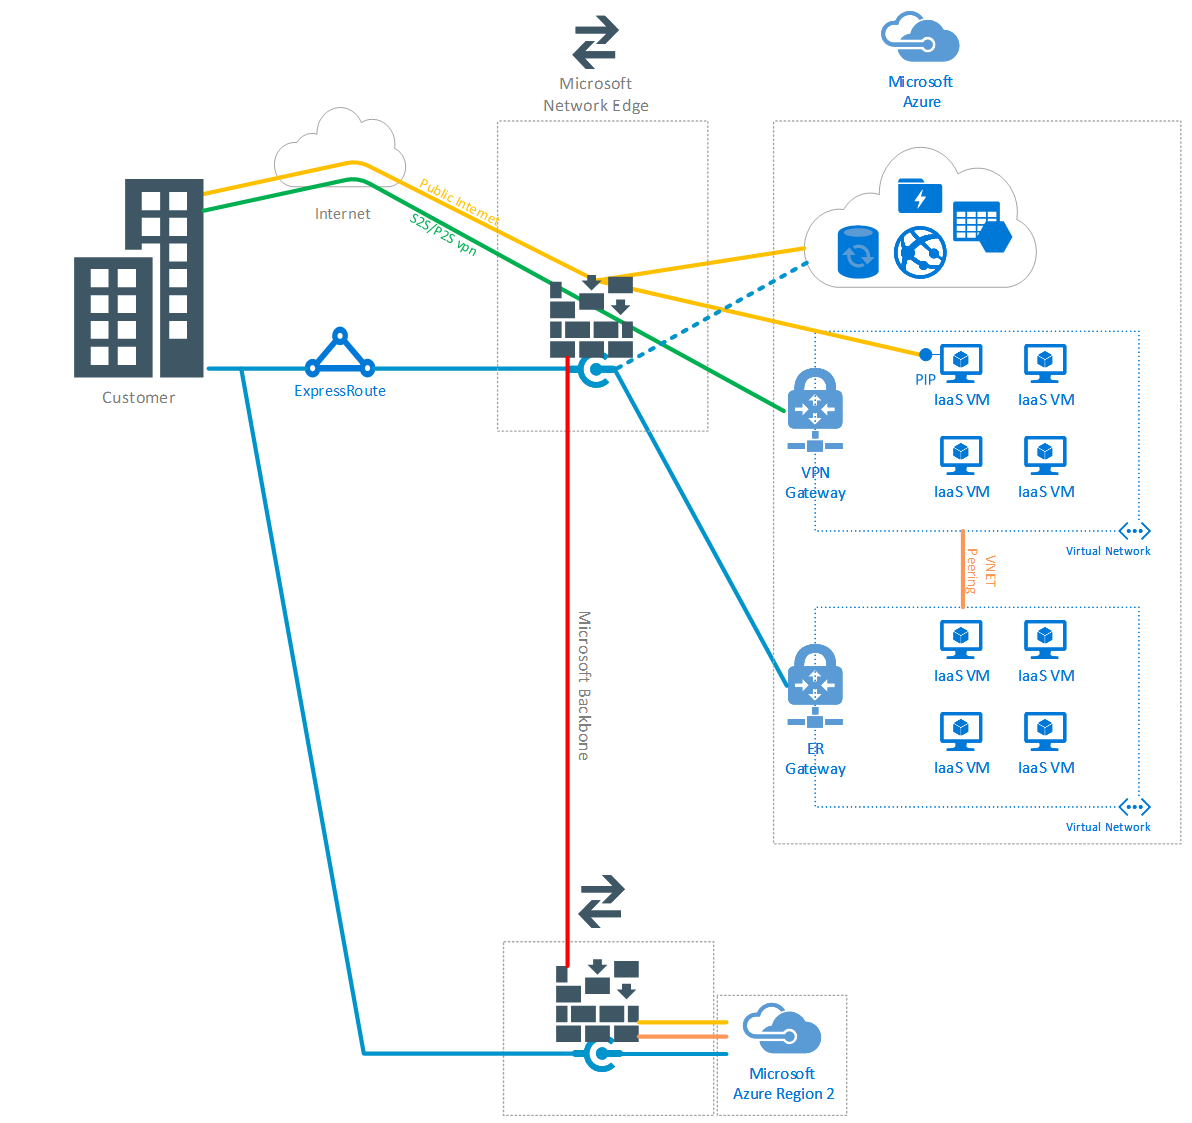 how to connect to azure vm